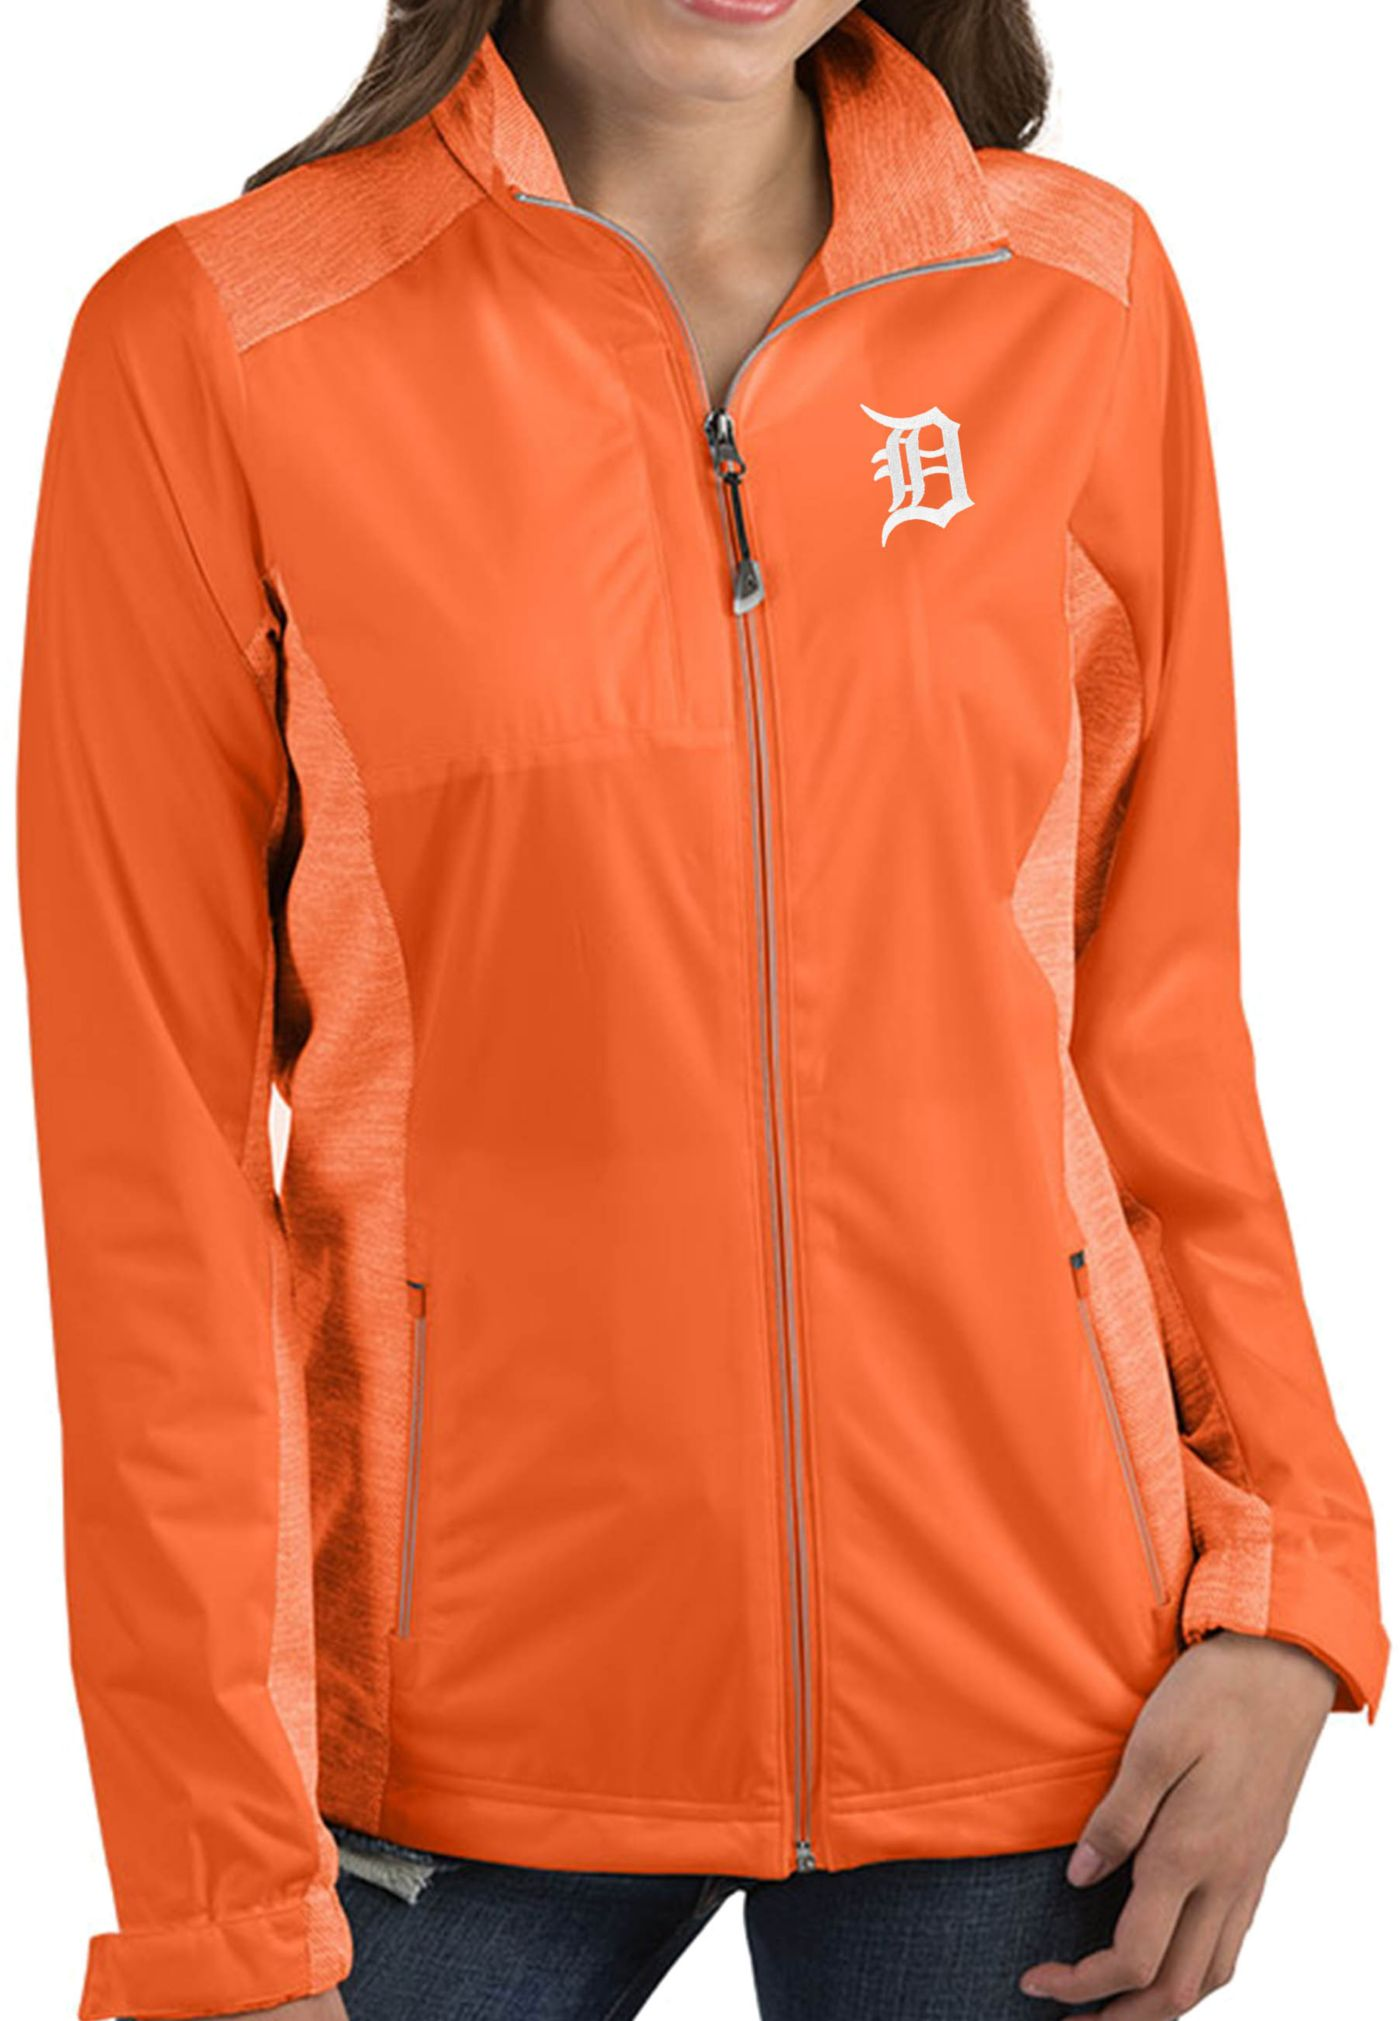 Antigua Women's Detroit Tigers Revolve Orange Full-Zip Jacket